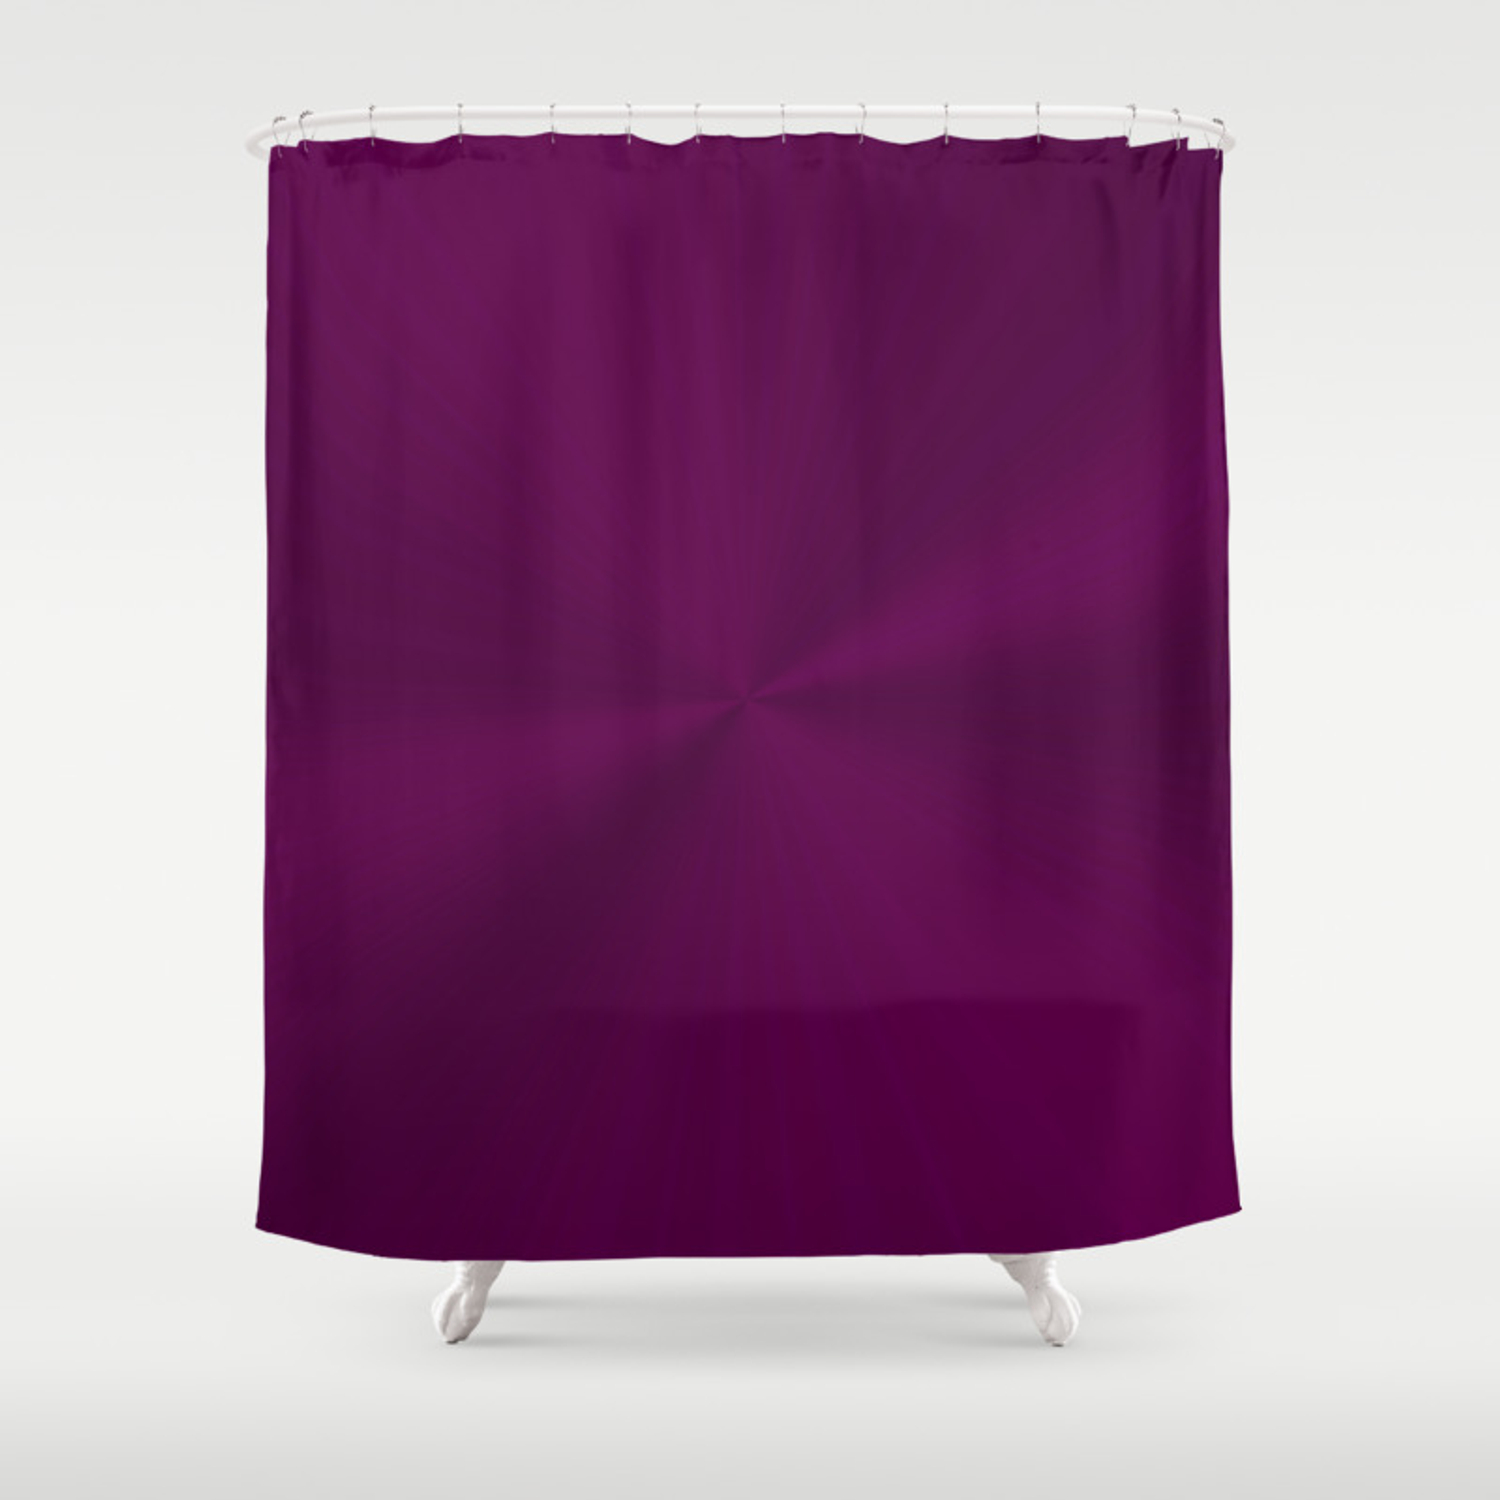 Luxurious Regal Purple With Shiny Effect Shower Curtain